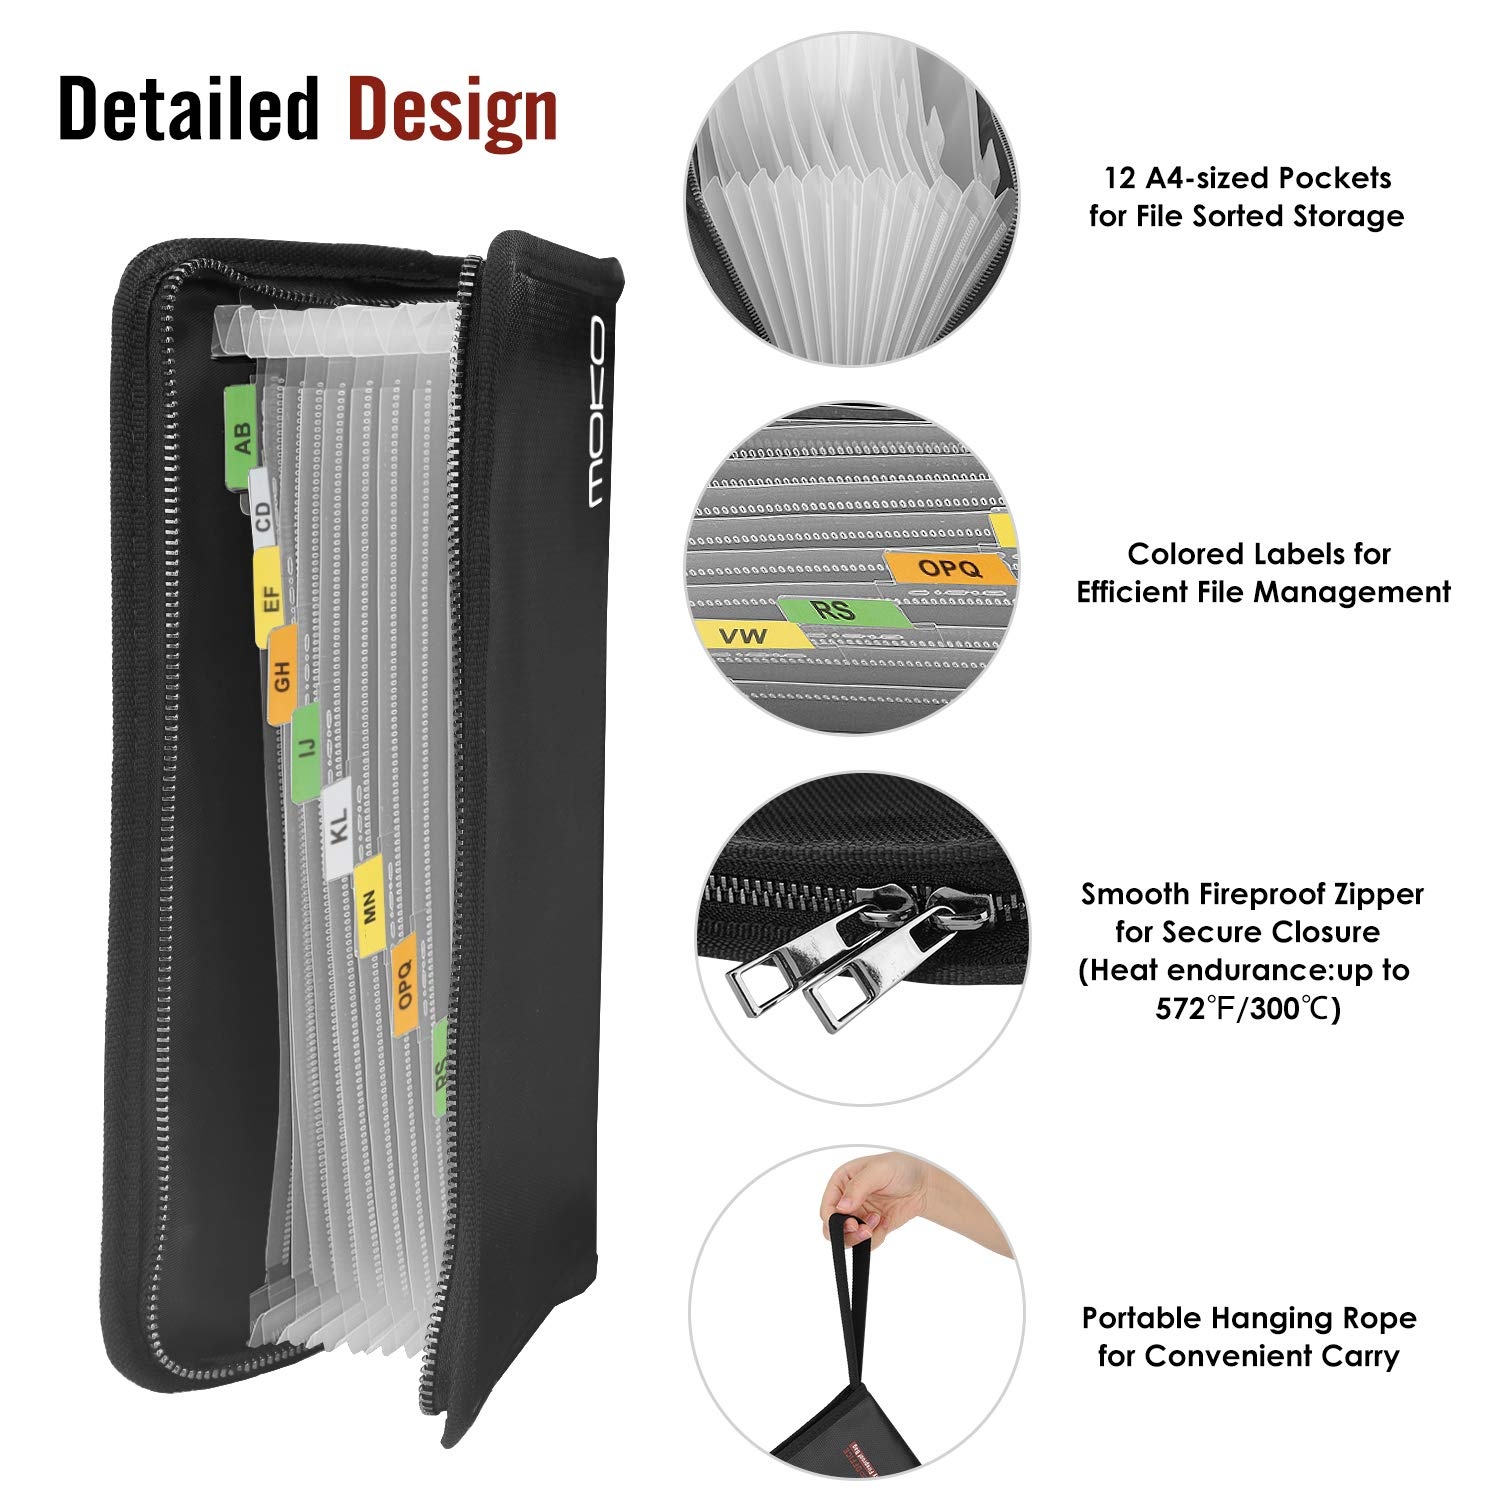 Black Non-Itchy Silicone Coated Portable Filing Pouch 14.3 x 9.8 MoKo Fireproof Document Bag Fire /& Water Resistant File Folder with A4 Size 12 Pockets Fireproof Waterproof Safe Document Holder